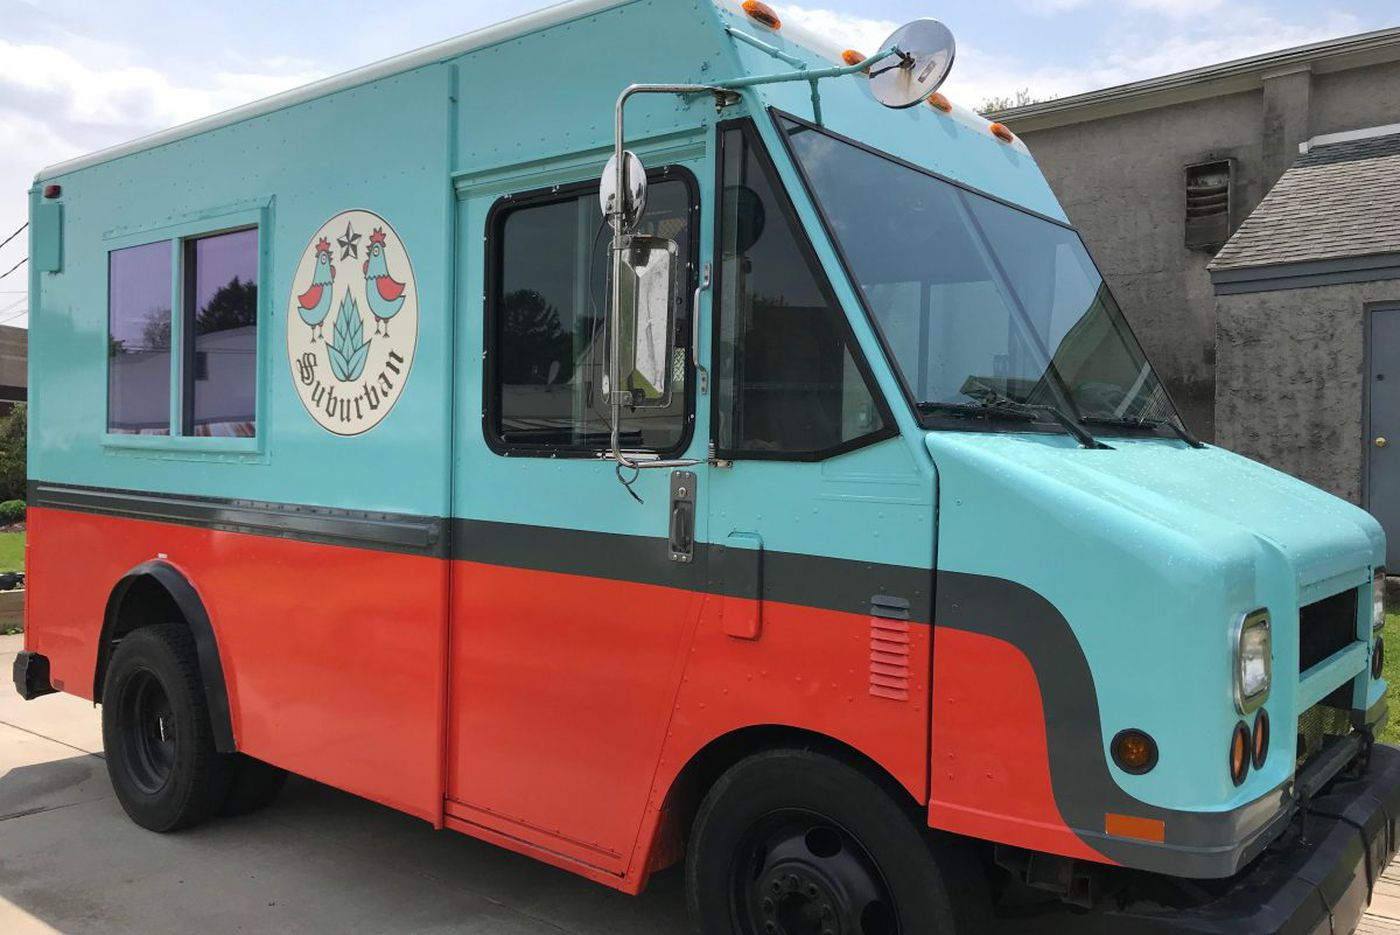 Suburban Restaurant adds a food truck at its brewery